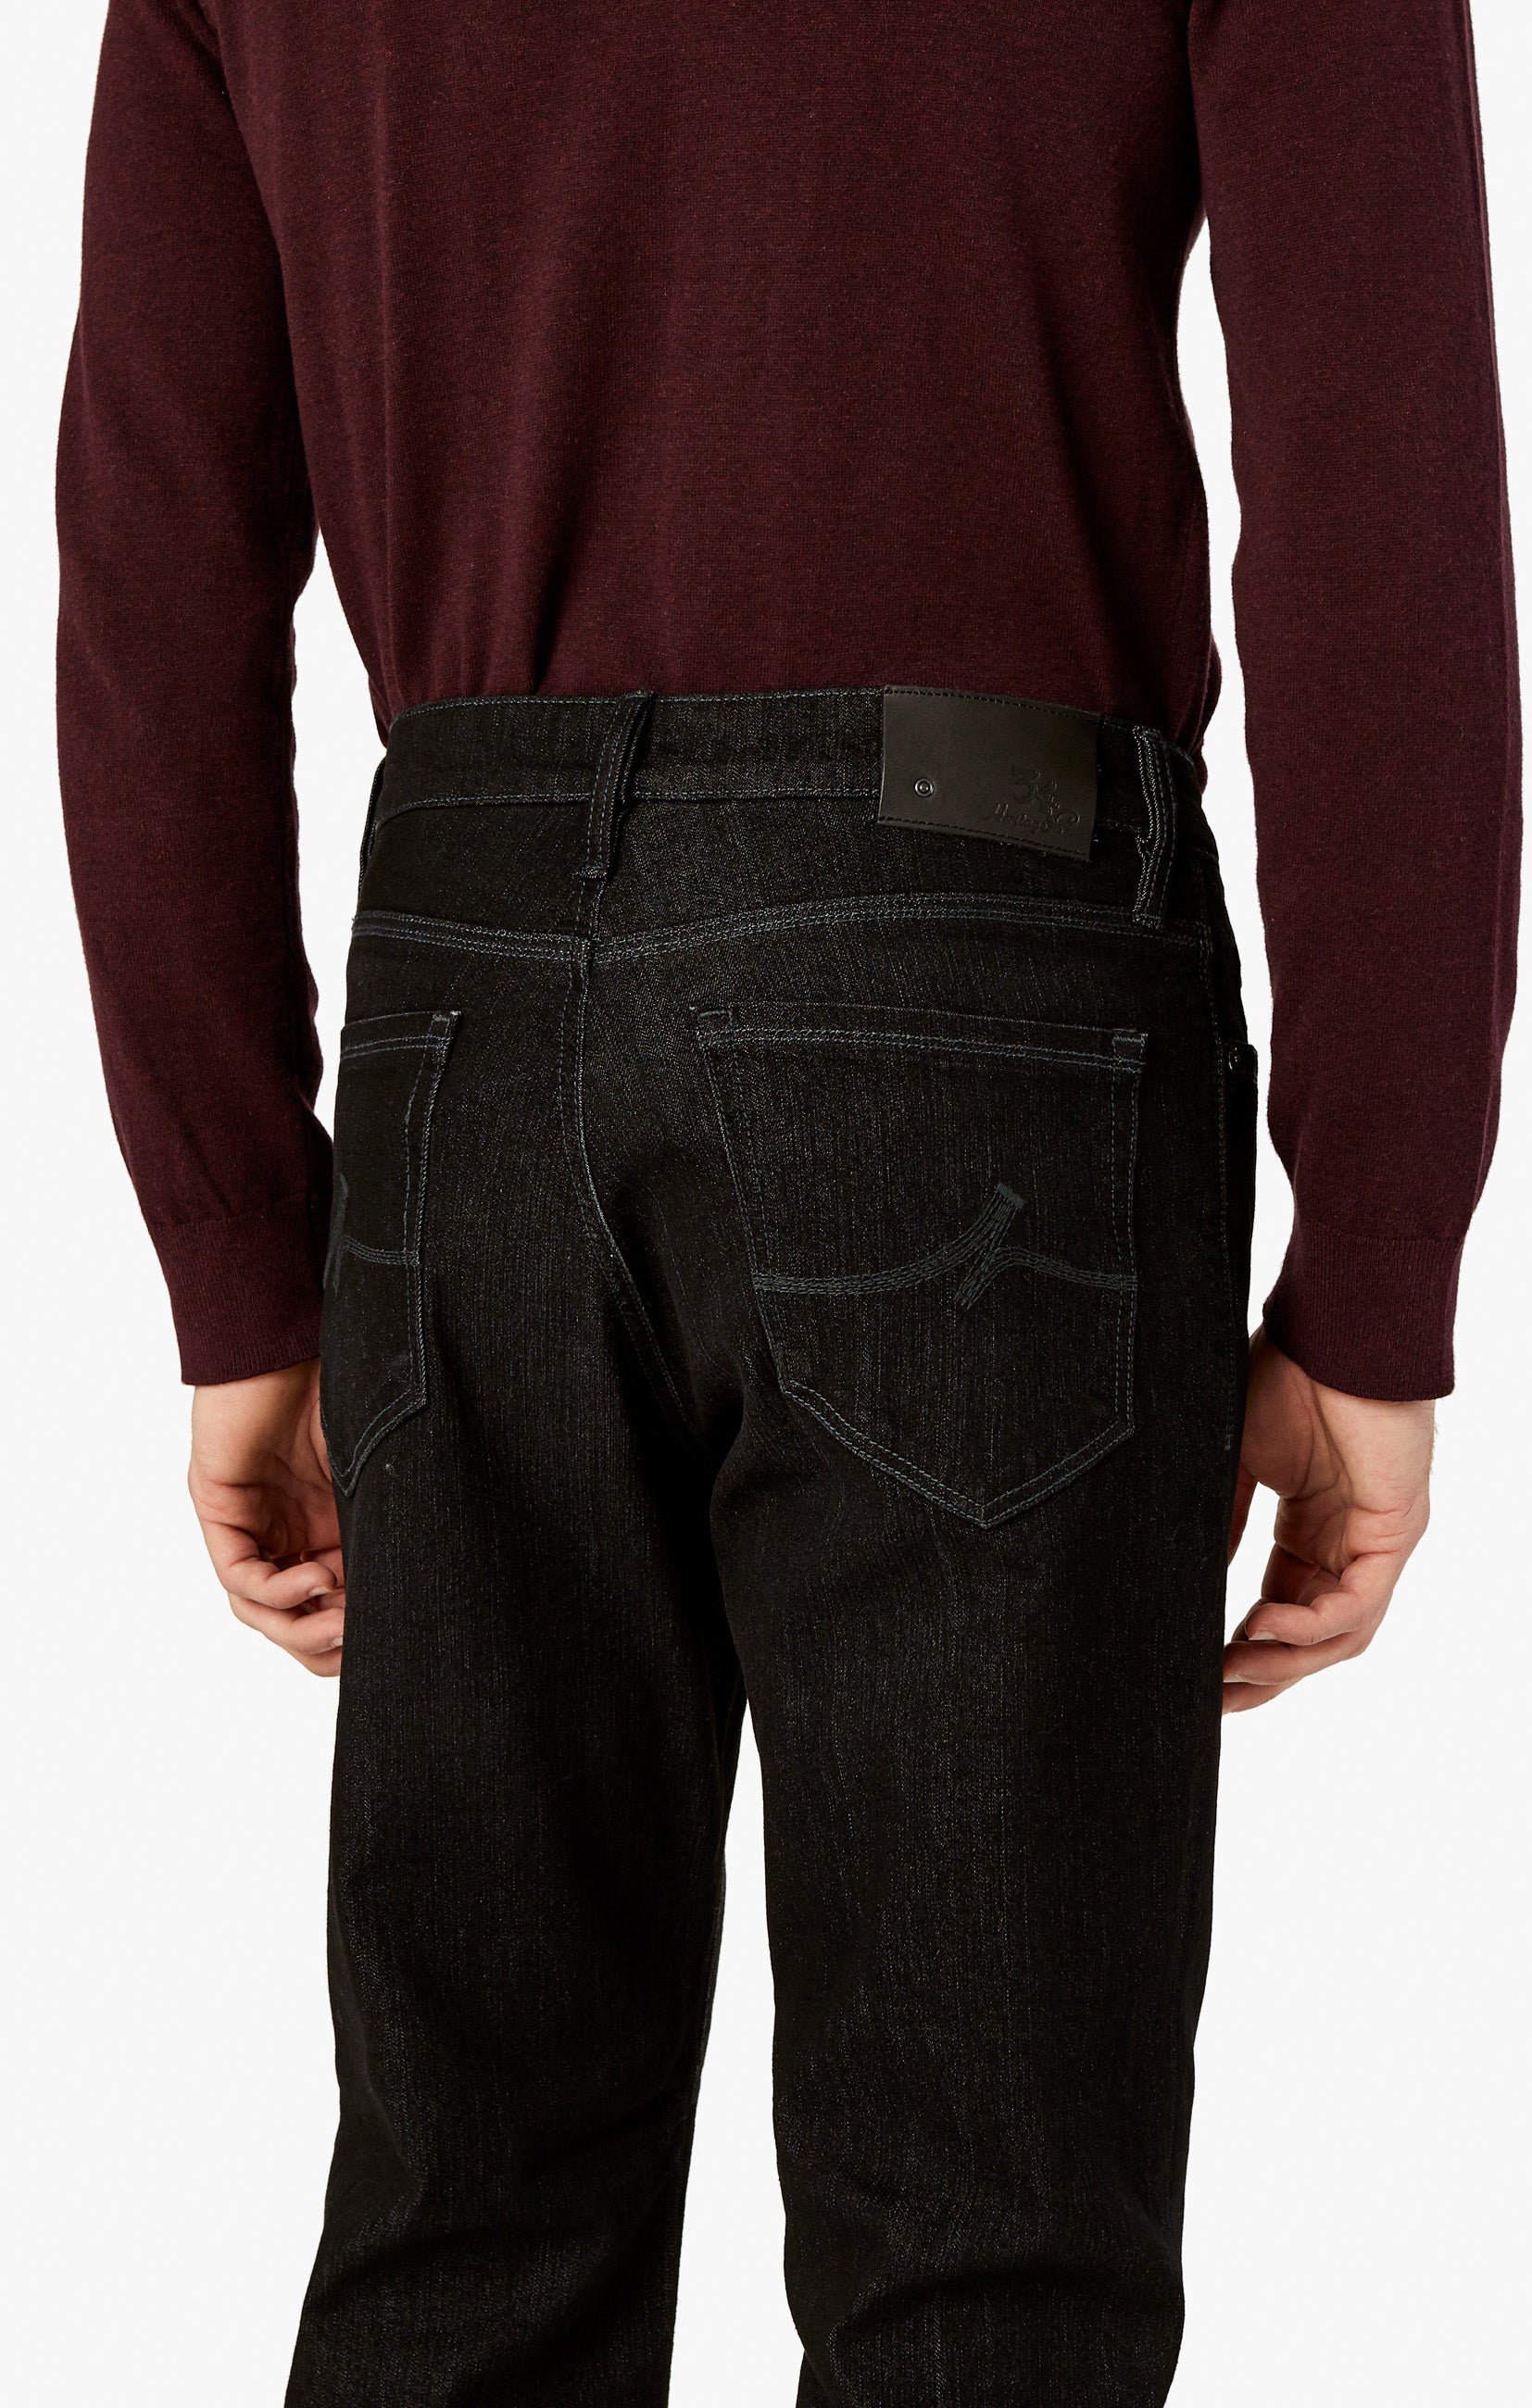 Charisma Relaxed Straight Jeans In Charcoal Comfort Image 6